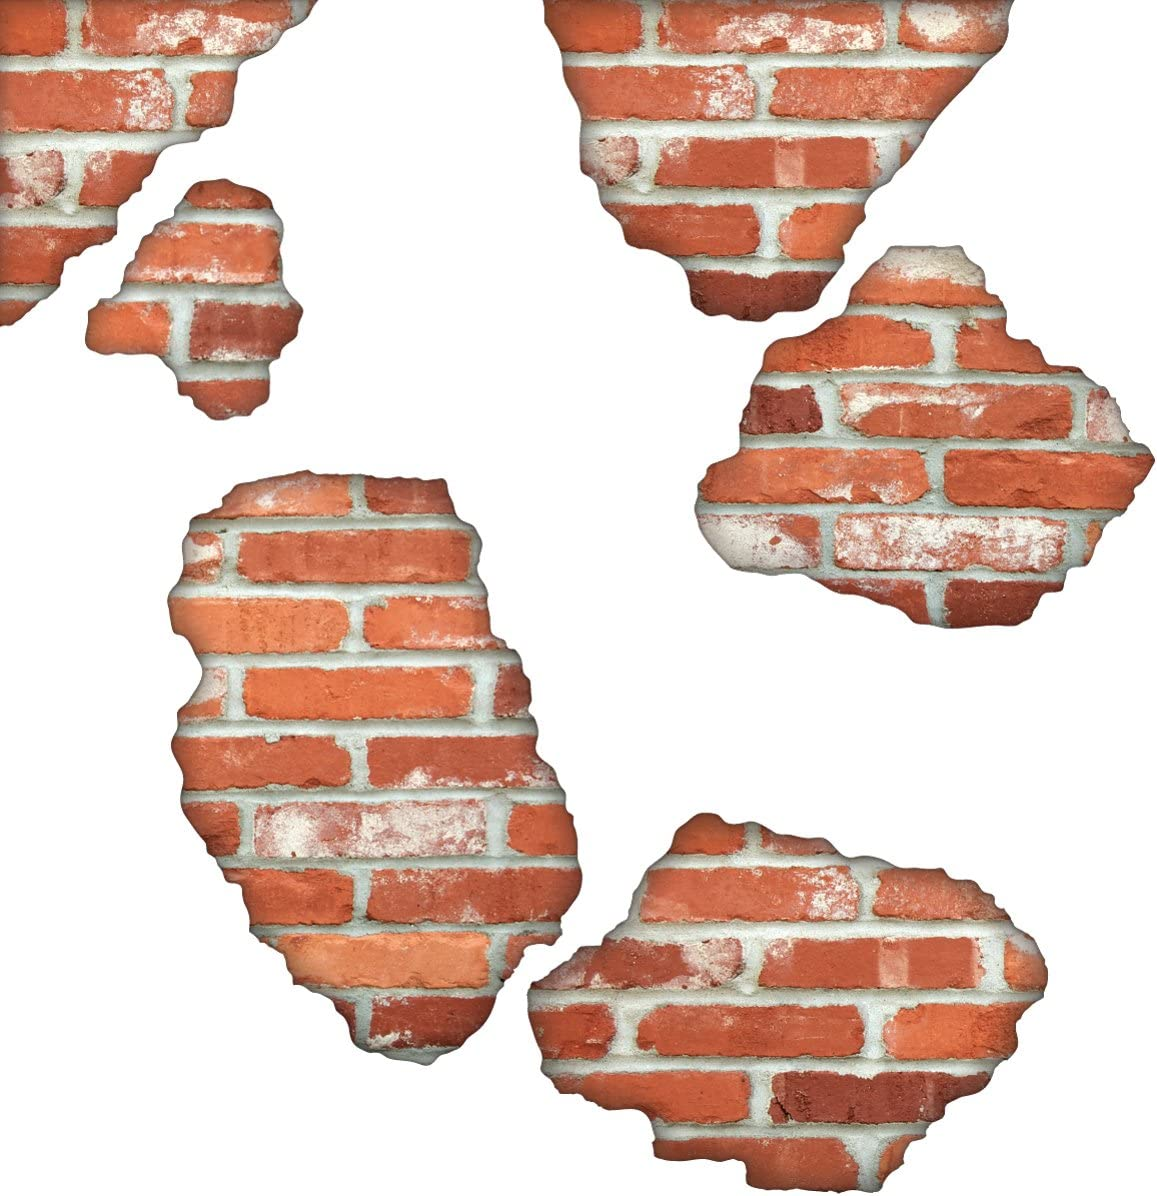 Faux Brick Wall Decals Brick Breakaway Wall Decals Repositionable Peel And Stick Matte Fabric Decals Wall Decor Stickers Amazon Com